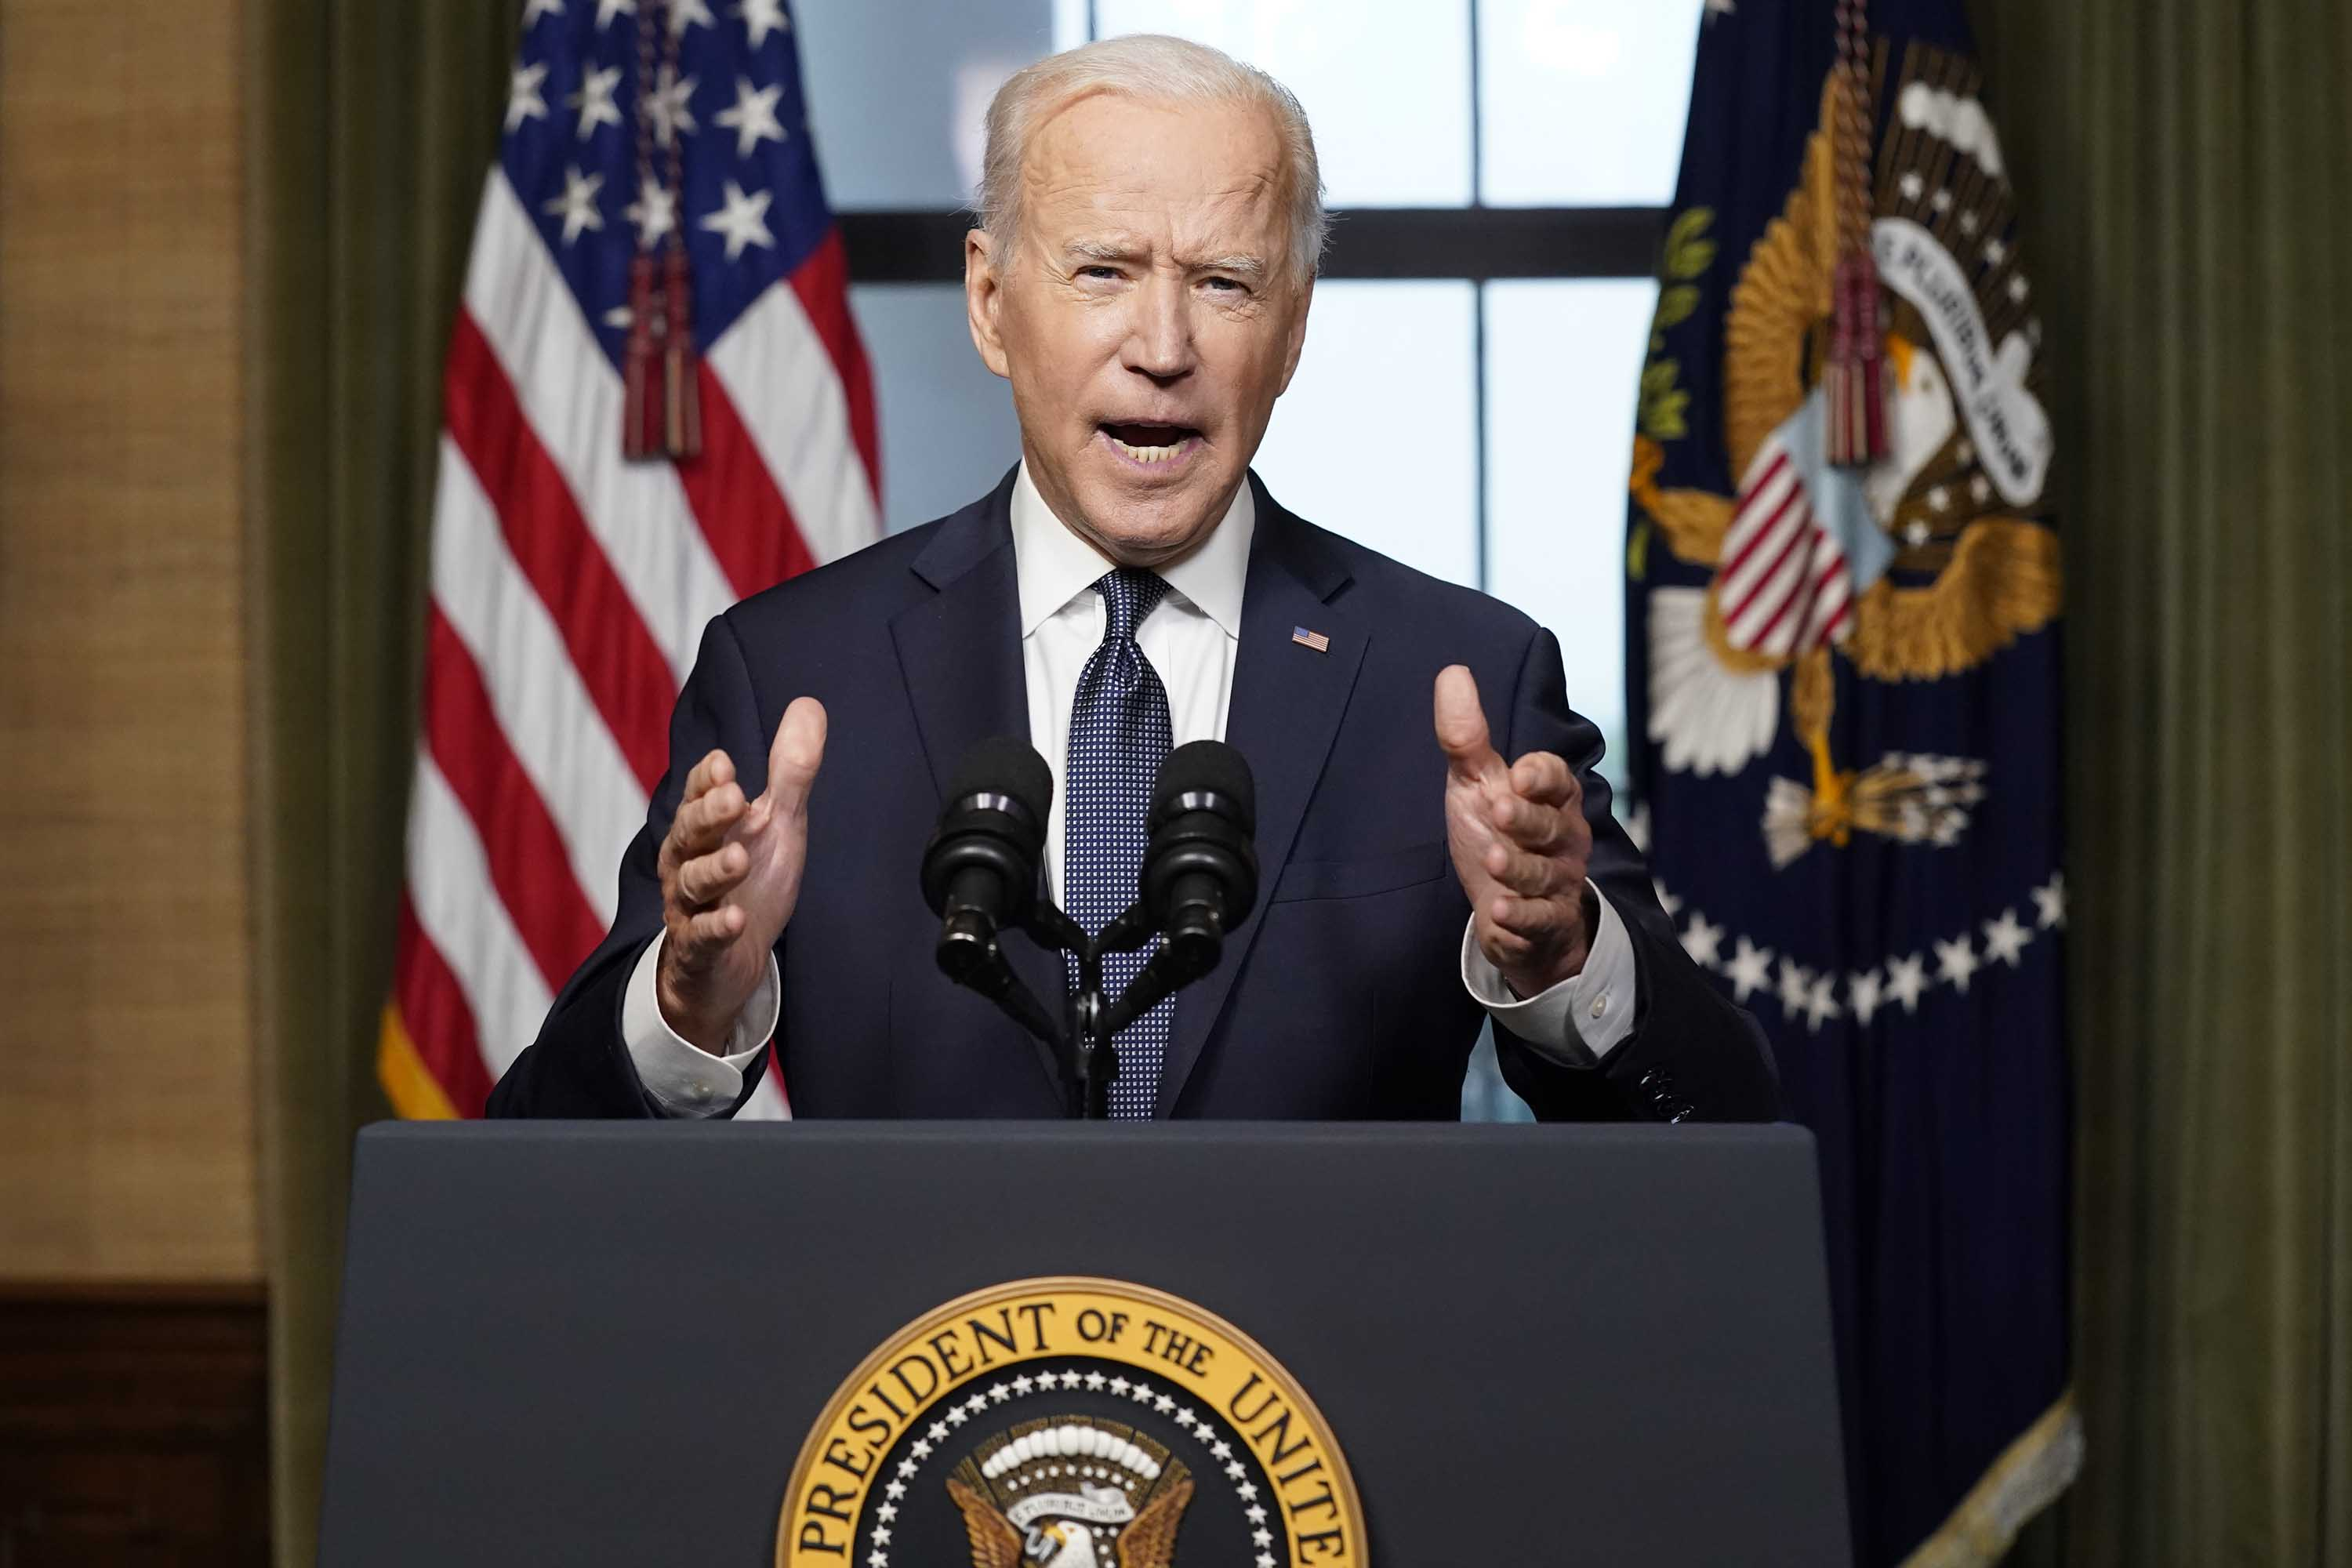 Biden promises Afghan leaders 'we're going to stick with you' as US pulls troops out